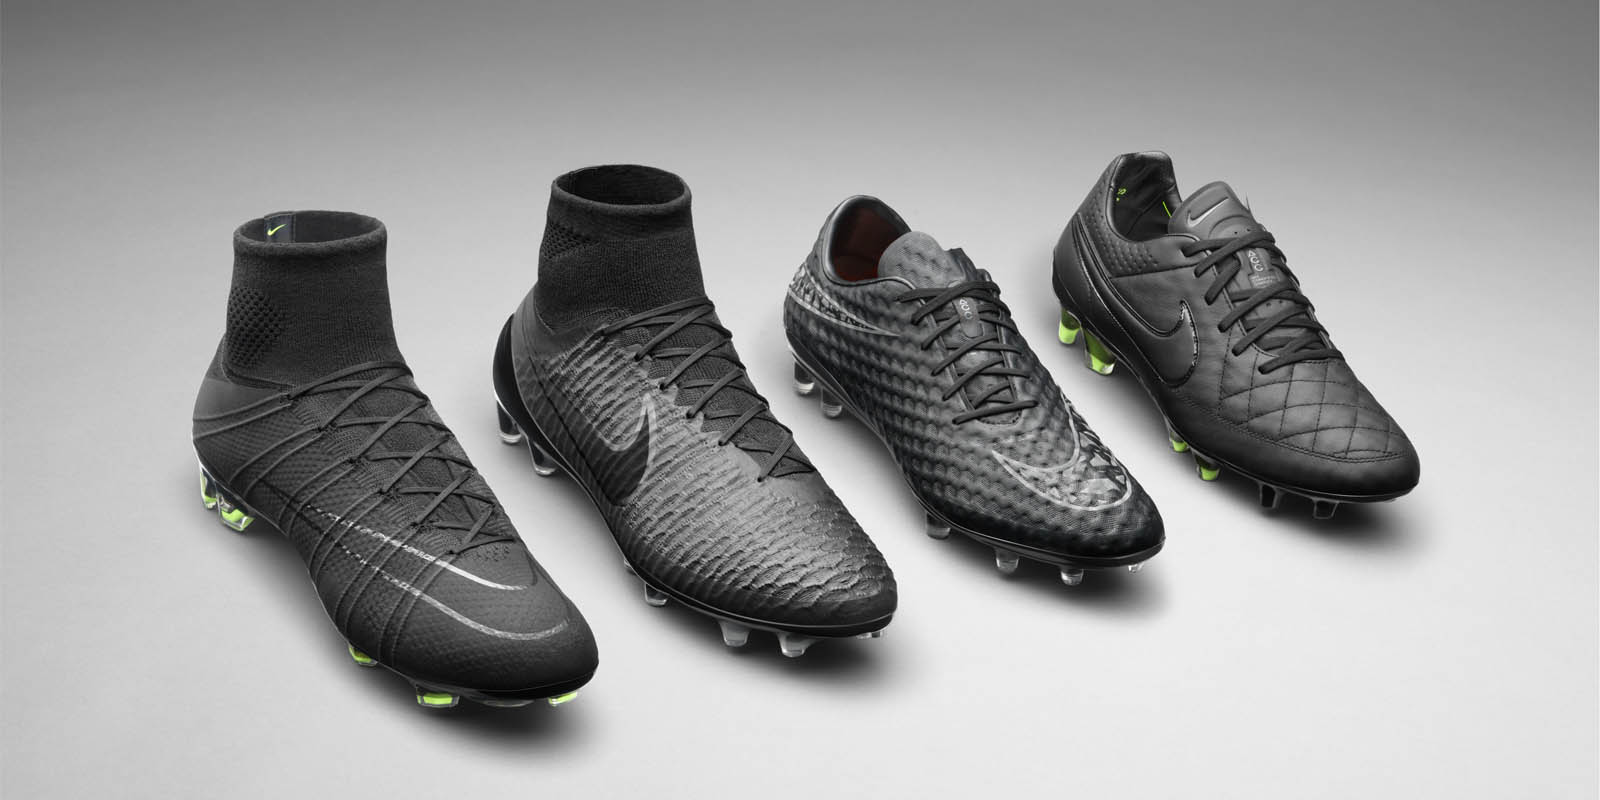 The new Nike Academy Pack is a nod to the Nike Academy players. On 24 April  2015 88380943d